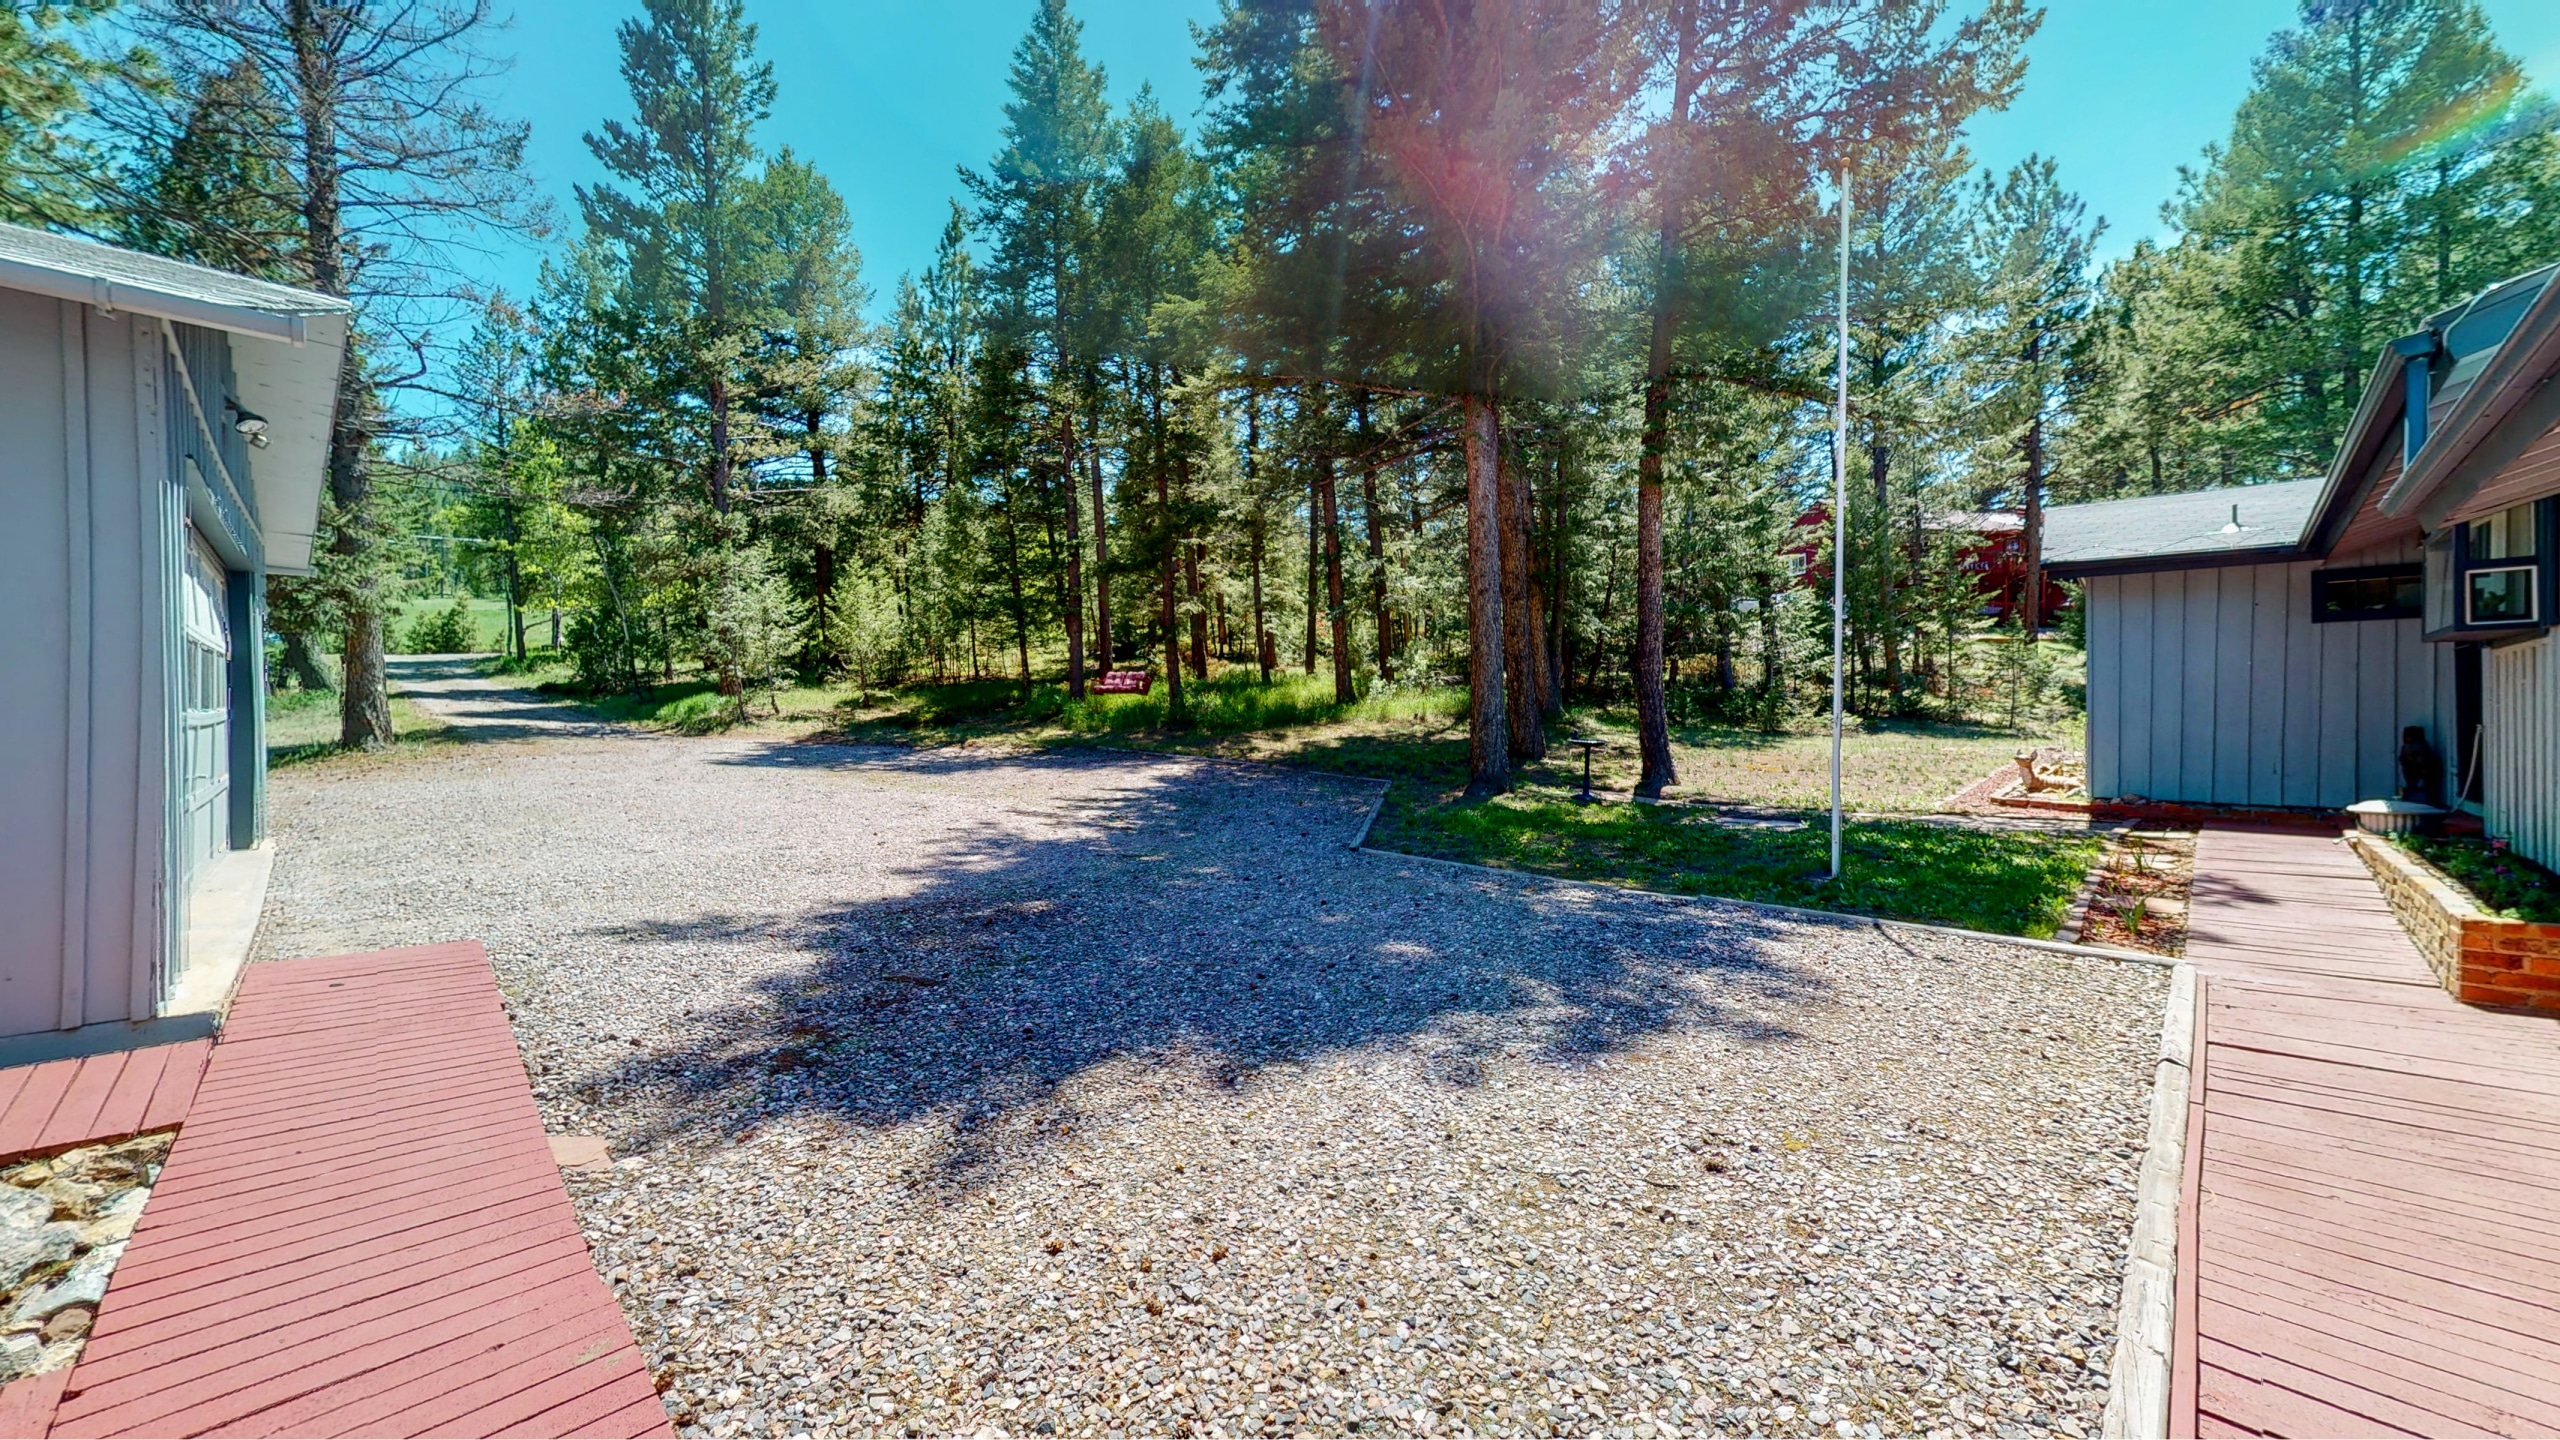 Graveled driveway for year-round access